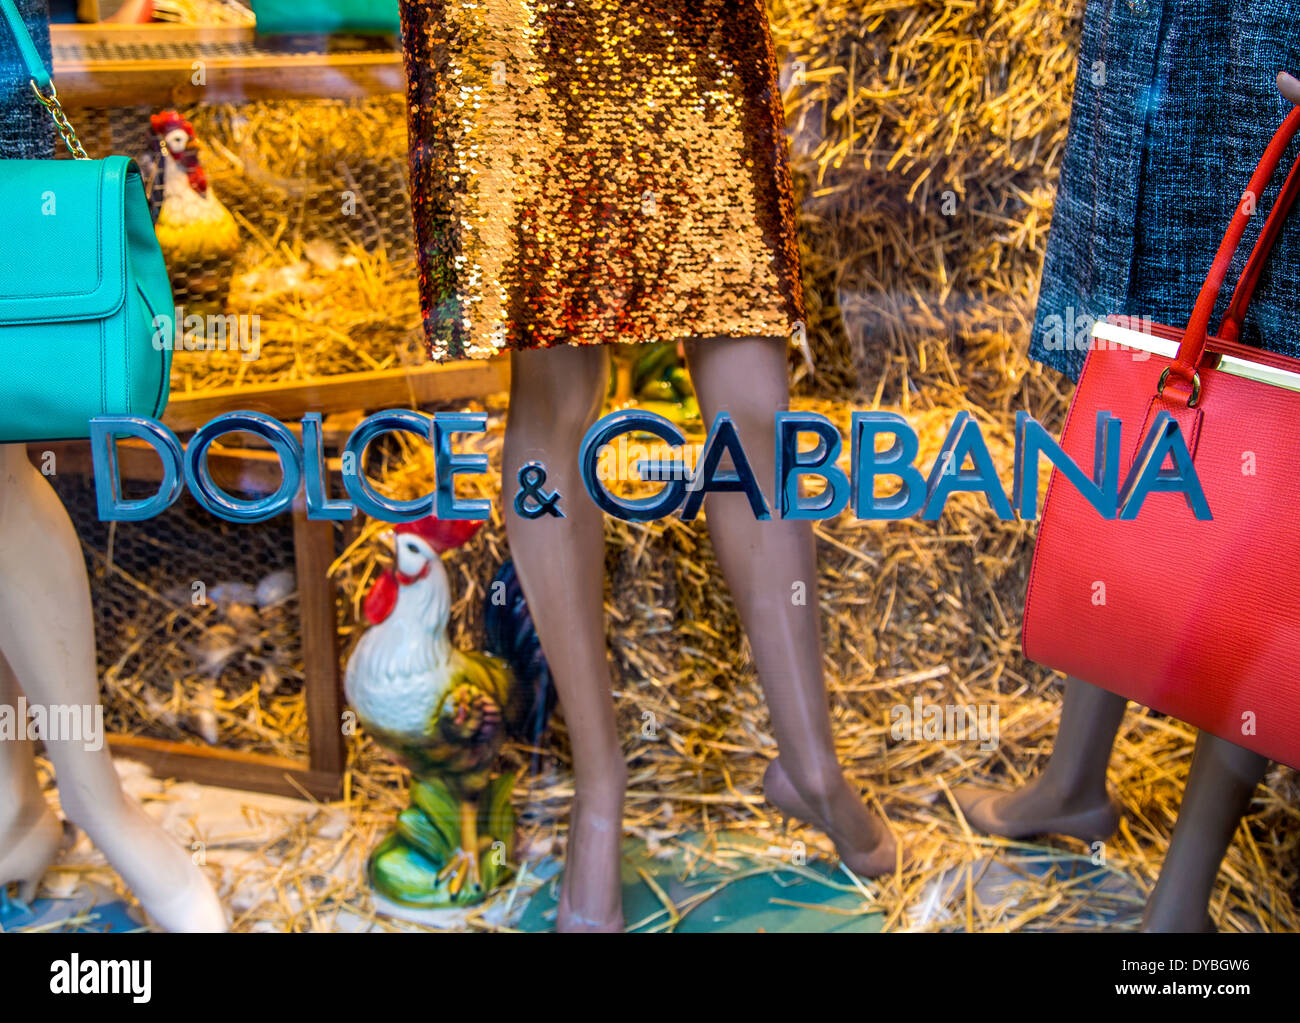 Dolce & Gabbana shop in Milan - Stock Image